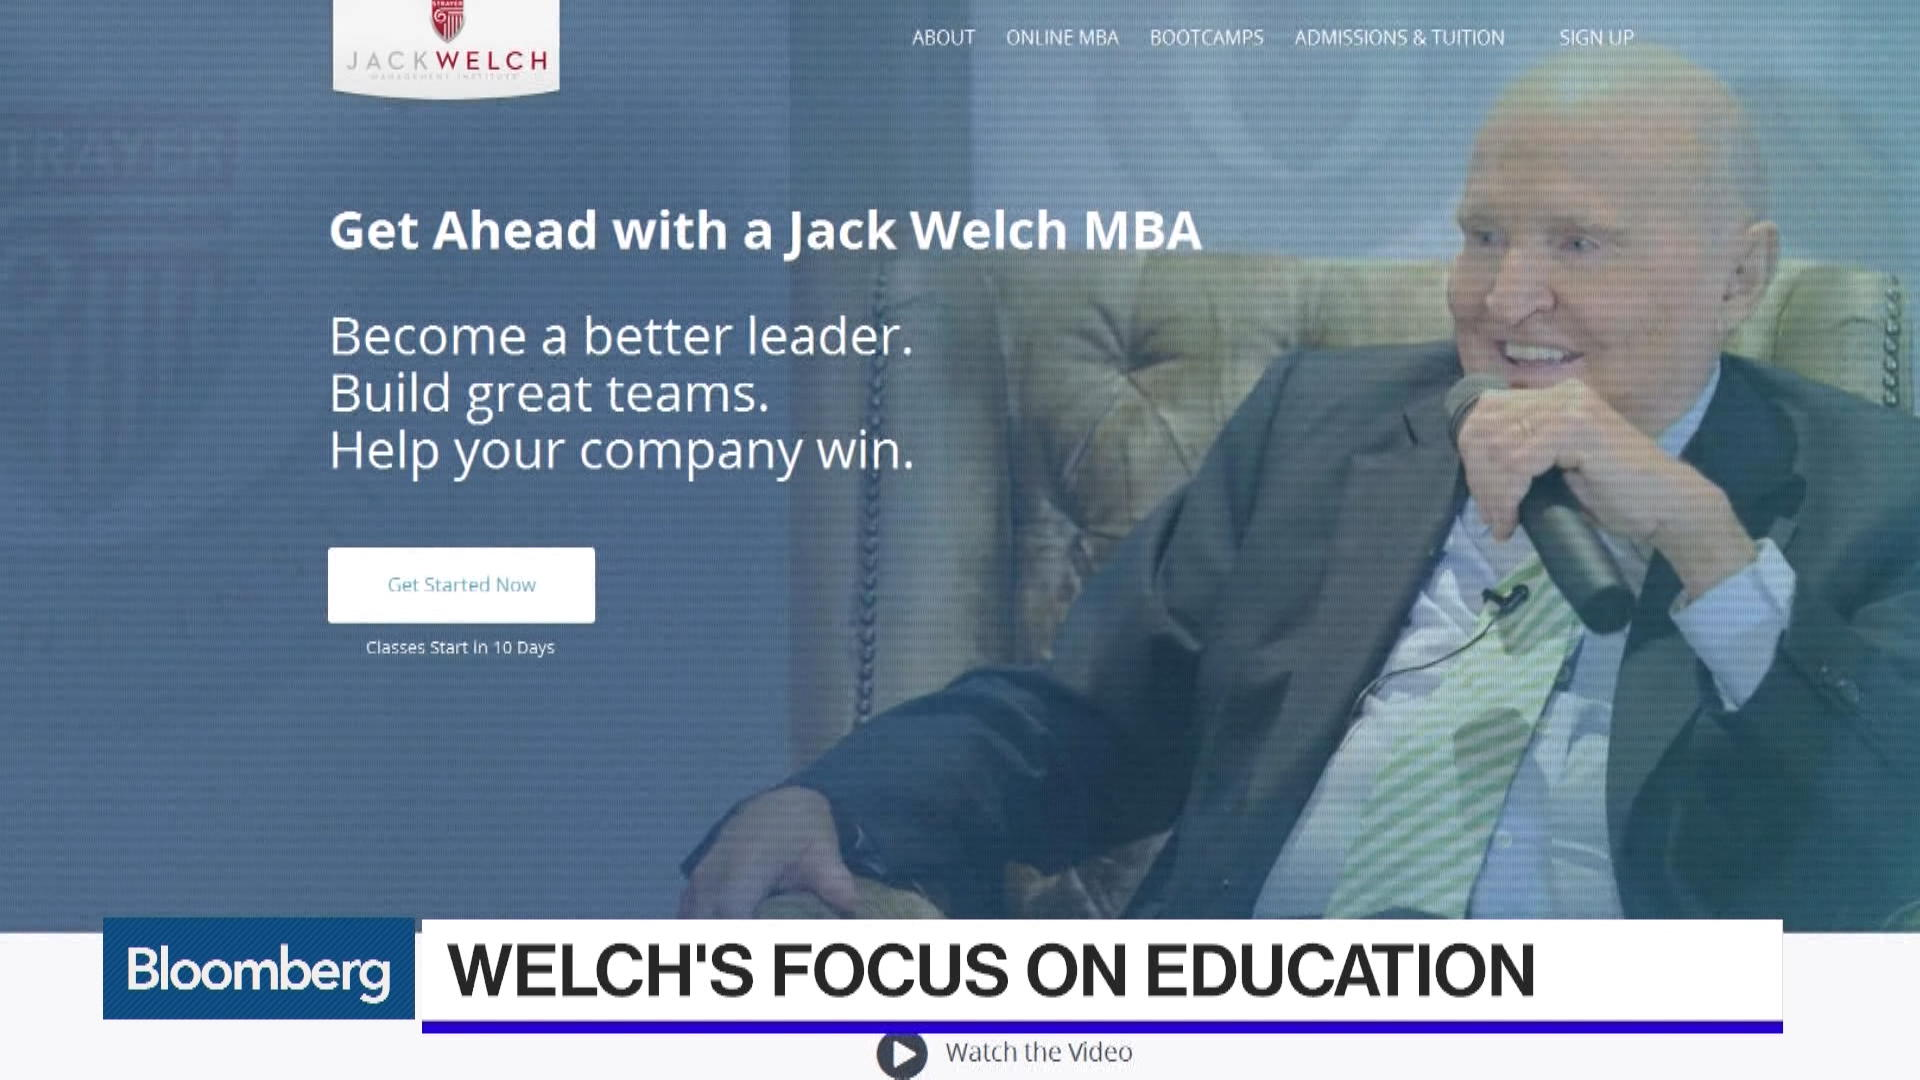 Jack Welchs Goal Is To Make You Better In Business Bloomberg